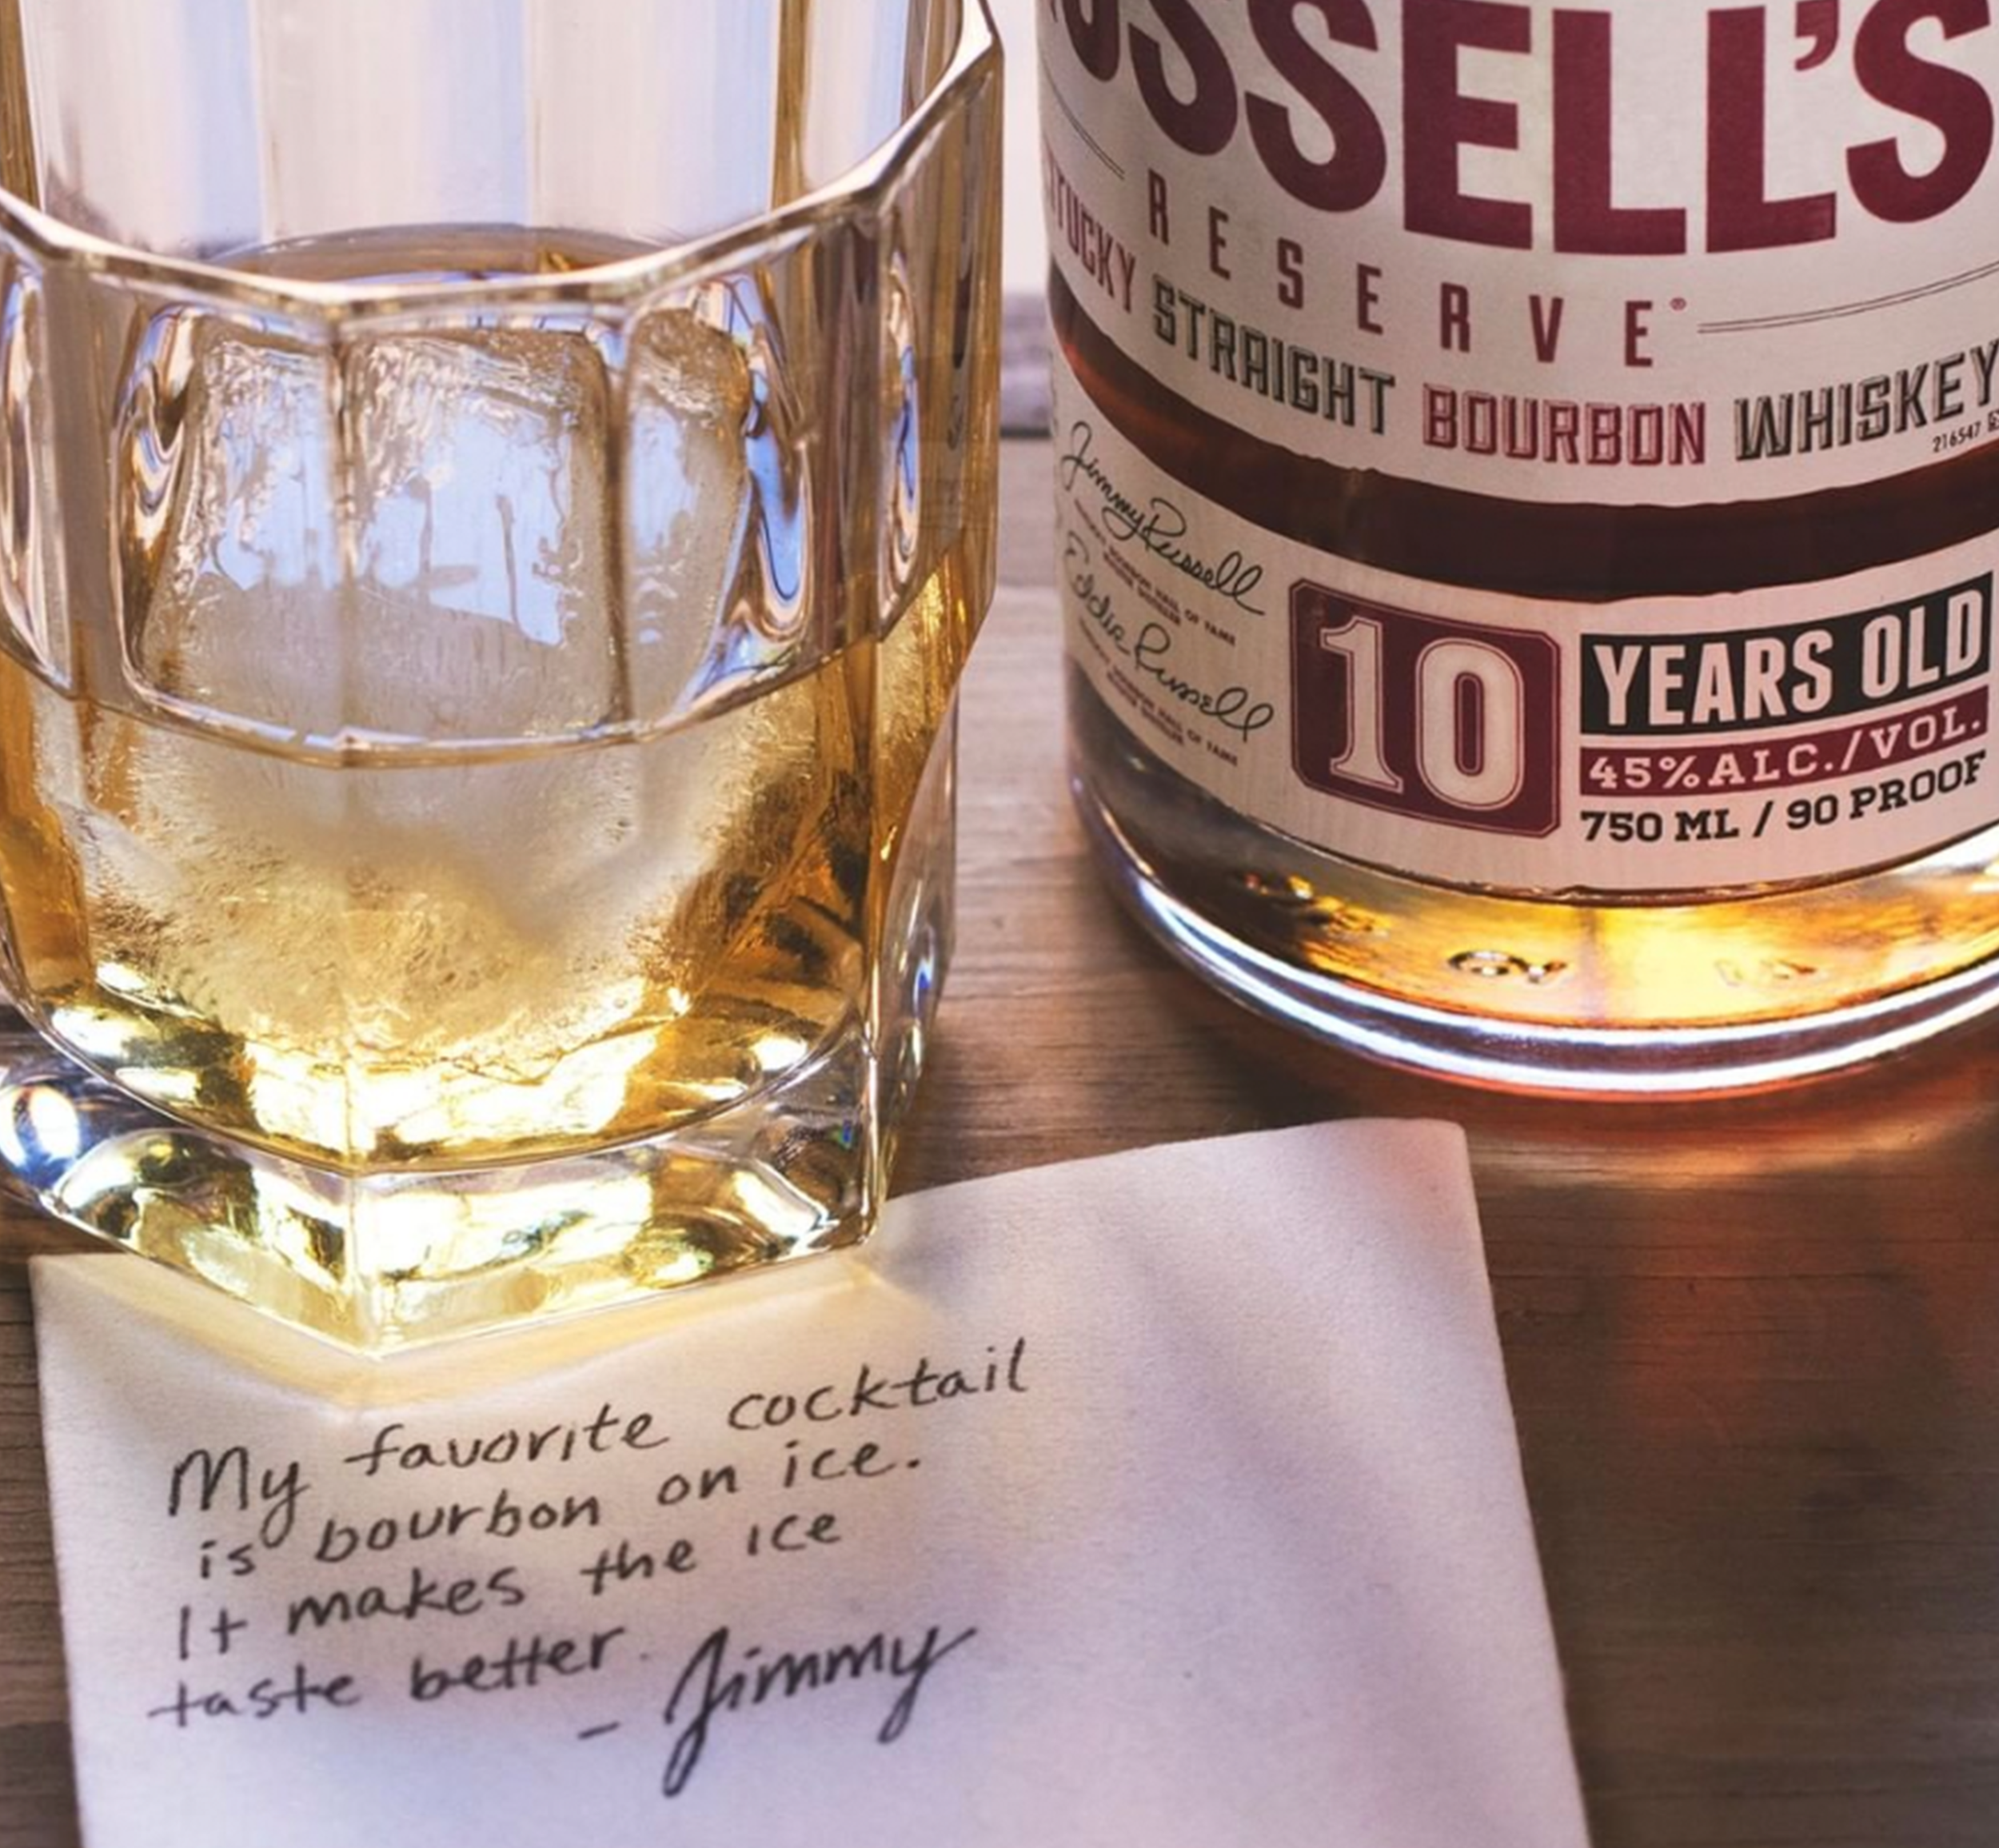 Russell's Reserve Social Content